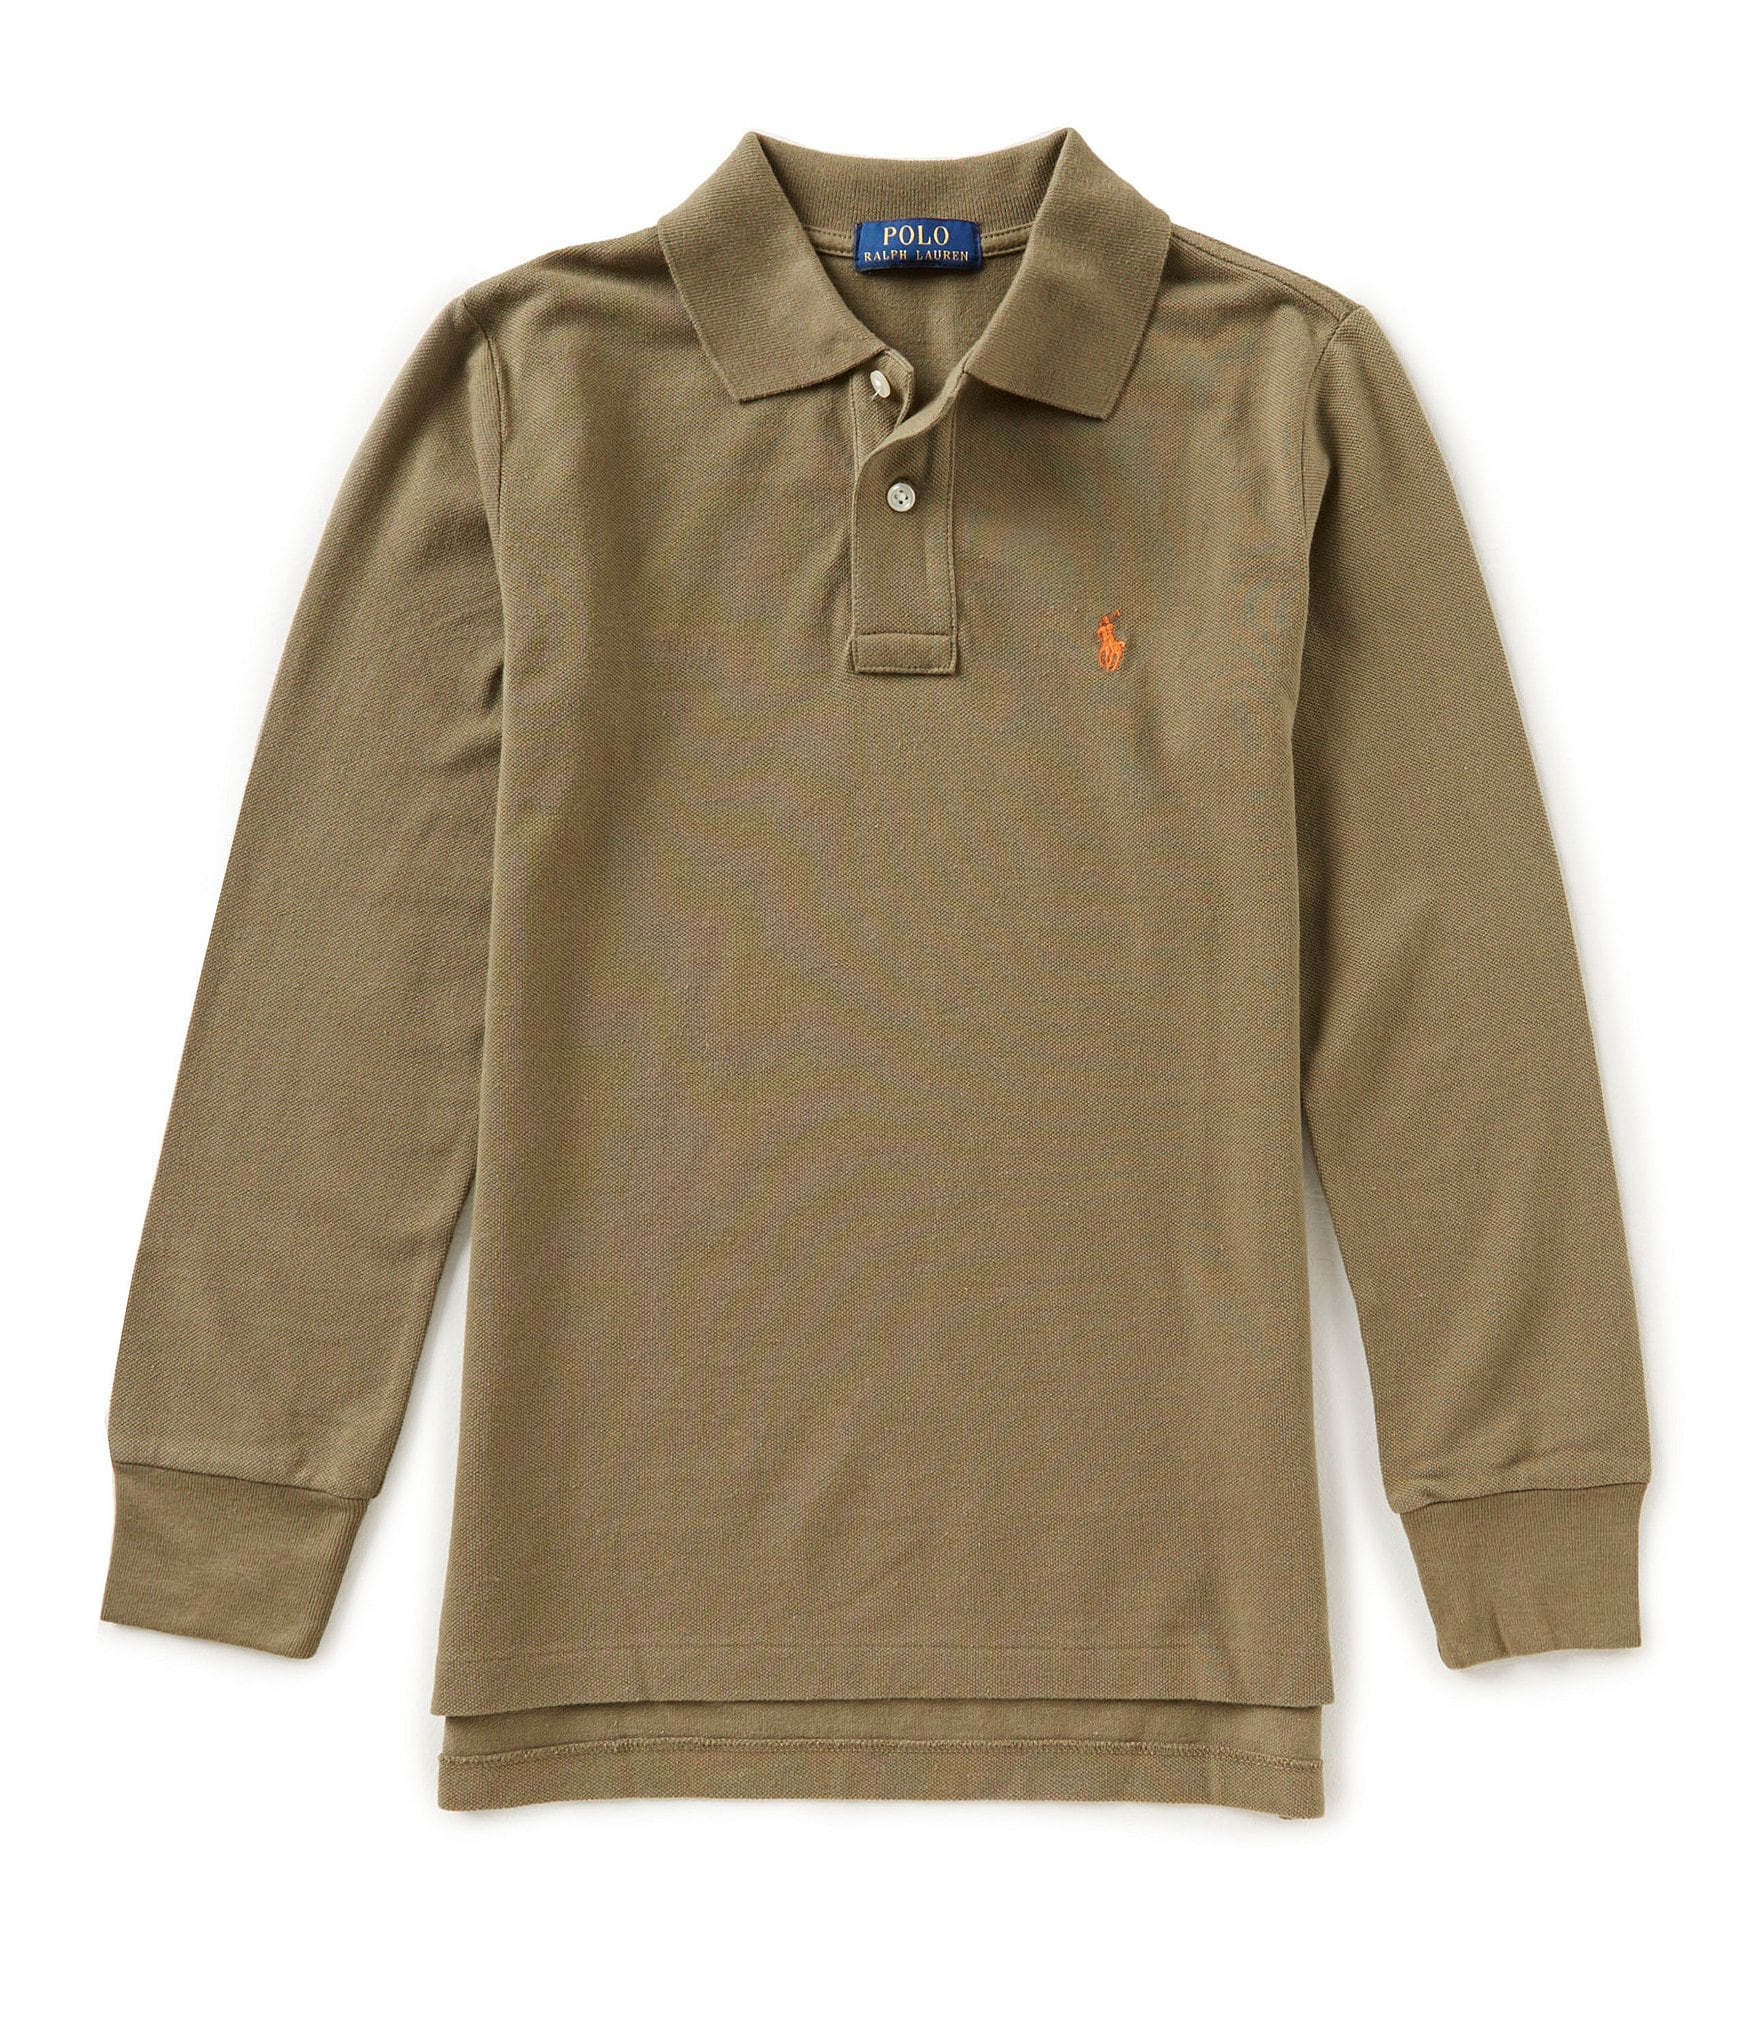 Ralph lauren childrenswear big boys 8 20 long sleeve mesh for Lightweight breathable long sleeve shirts